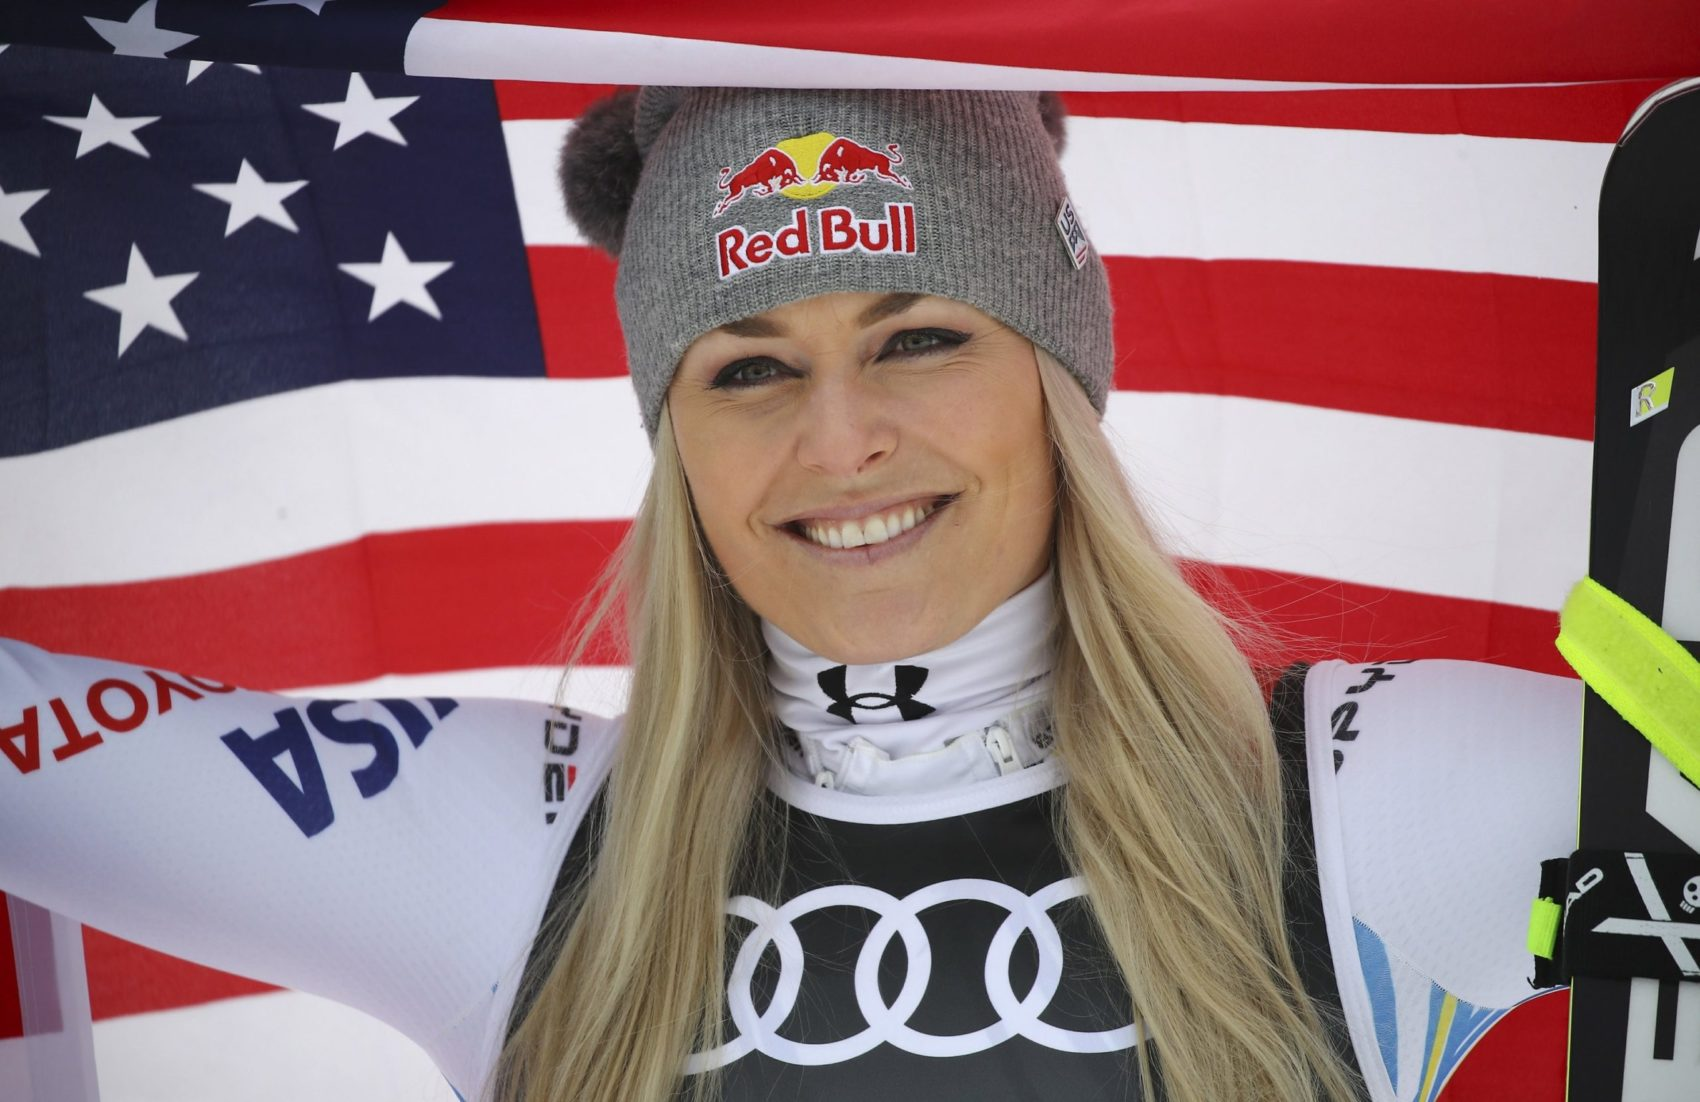 Who is Lindsey Vonn?